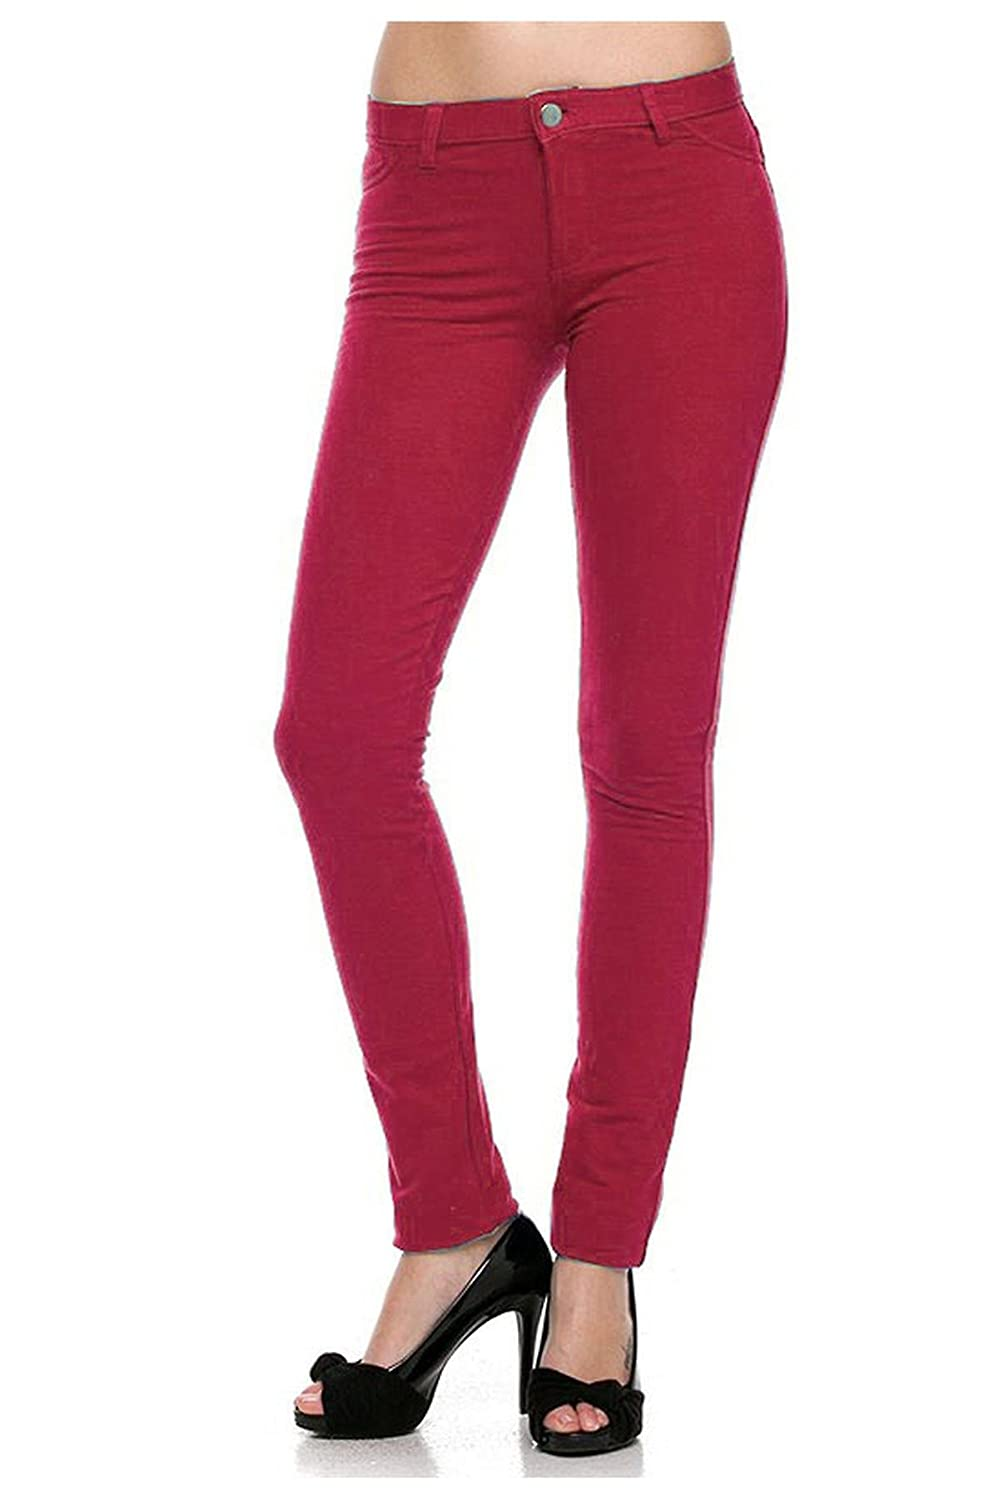 G2 Chic Women's Buttoned Stretchy Cotton Slim Fit Skinny Pants